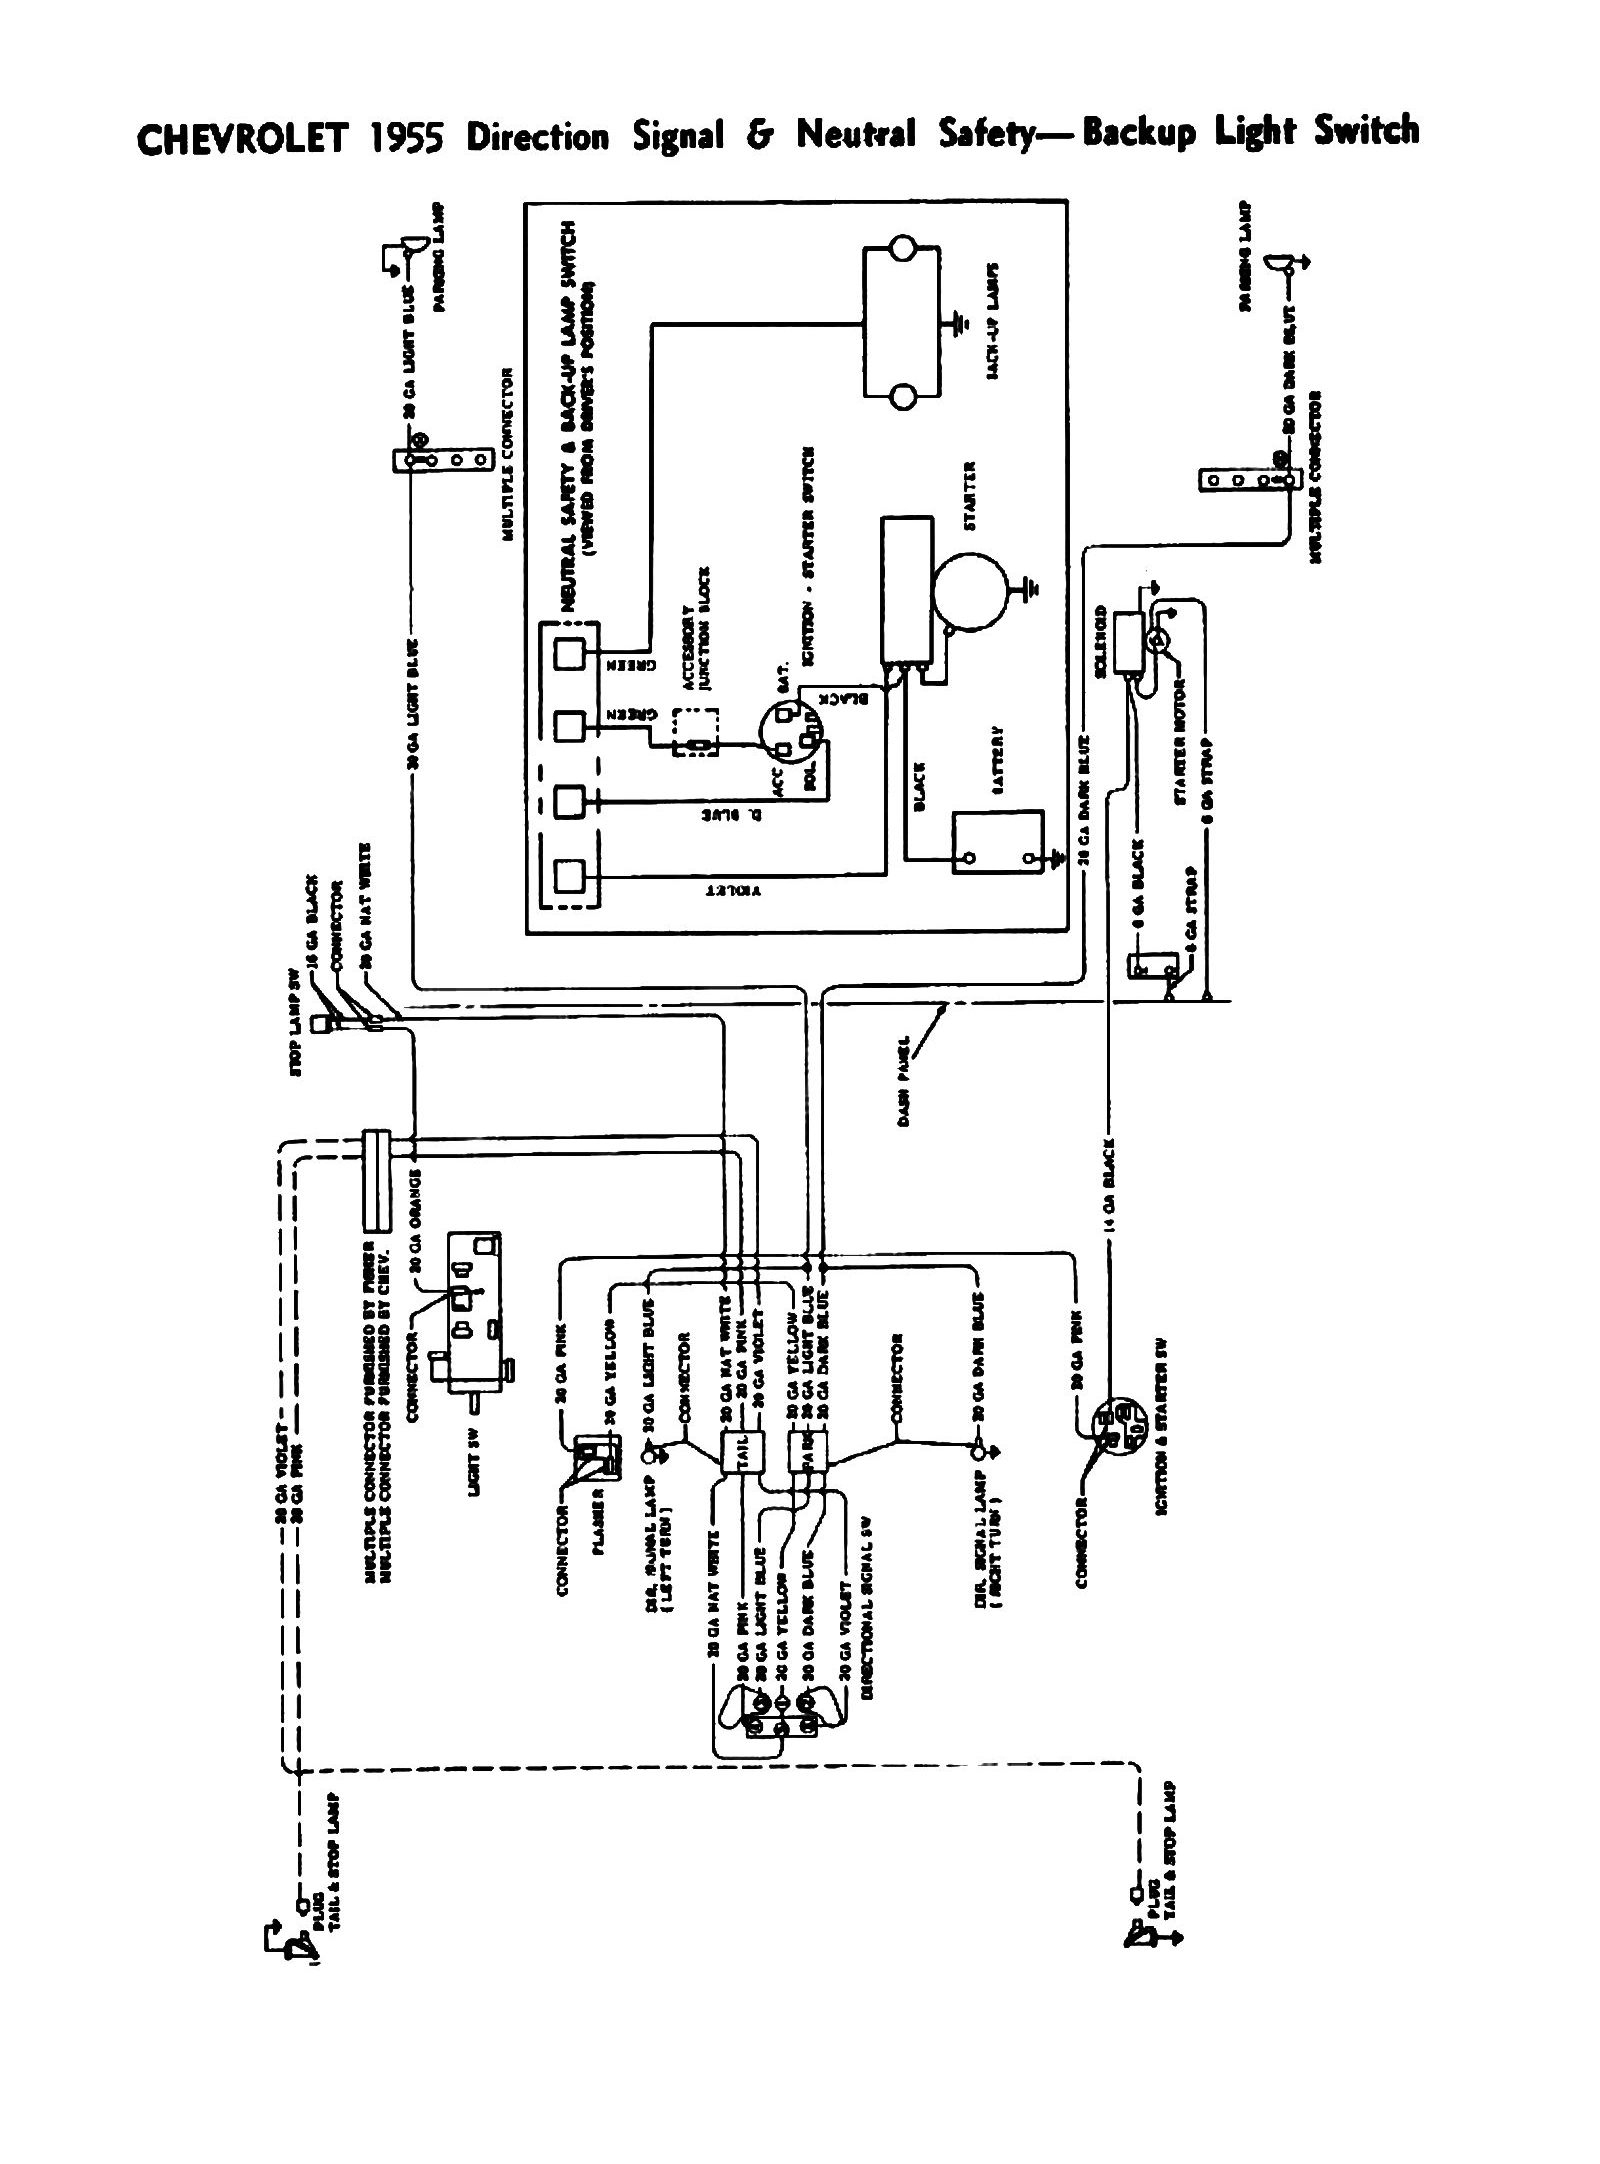 1955 chevy turn signal wiring diagram Download-1955 Directional Signals Neutral Safety & Backup Switches 9-p